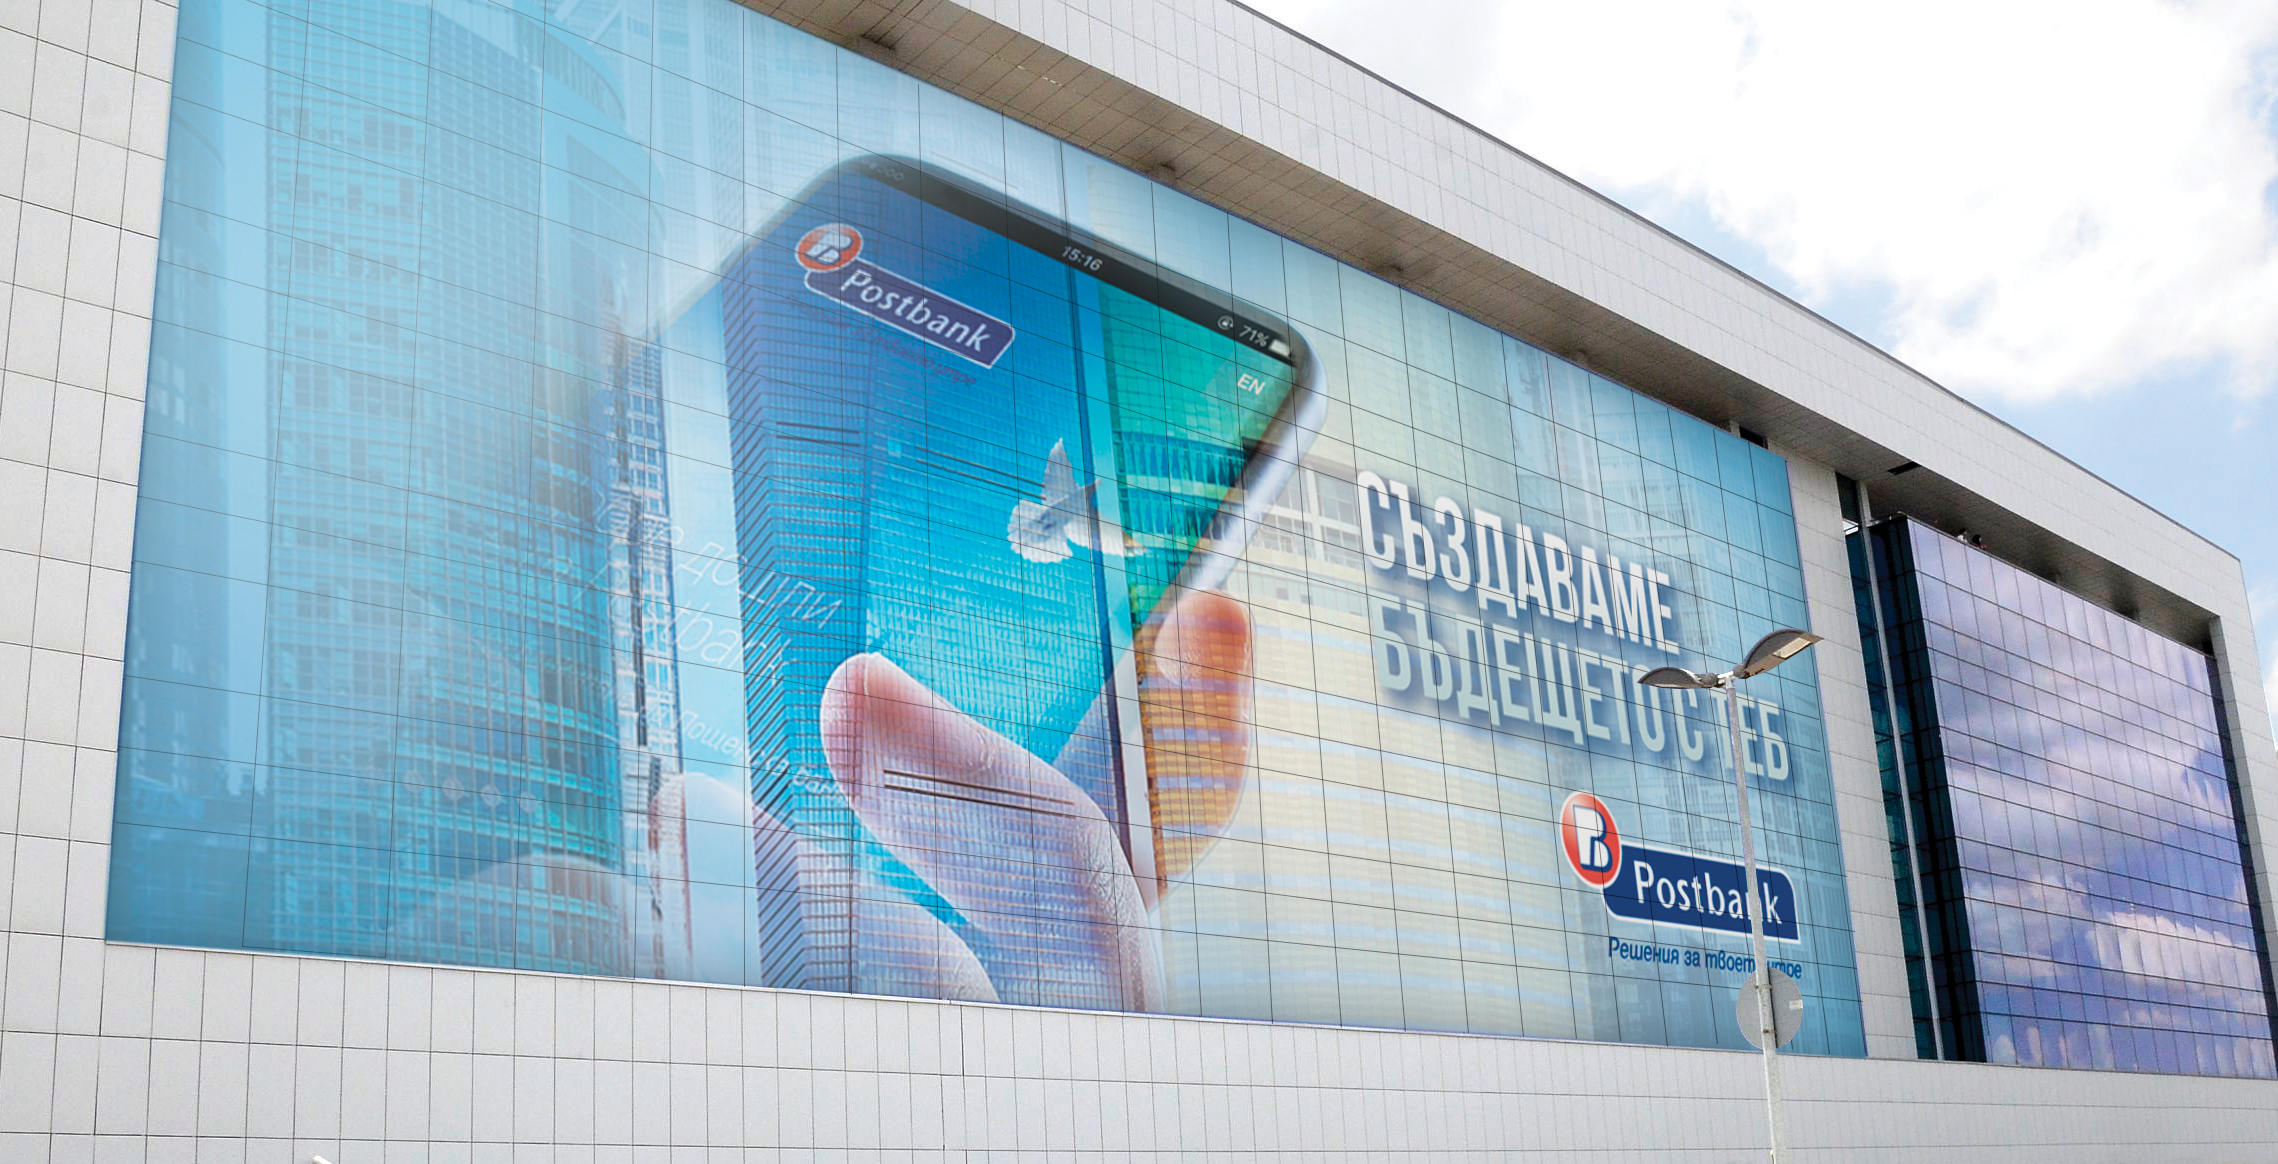 Postbank signs an agreement with the Bulgarian Development Bank to join the portfolio guarantee programme in support of micro, small and medium enterprises experiencing difficulties due to the Covid-19 pandemic